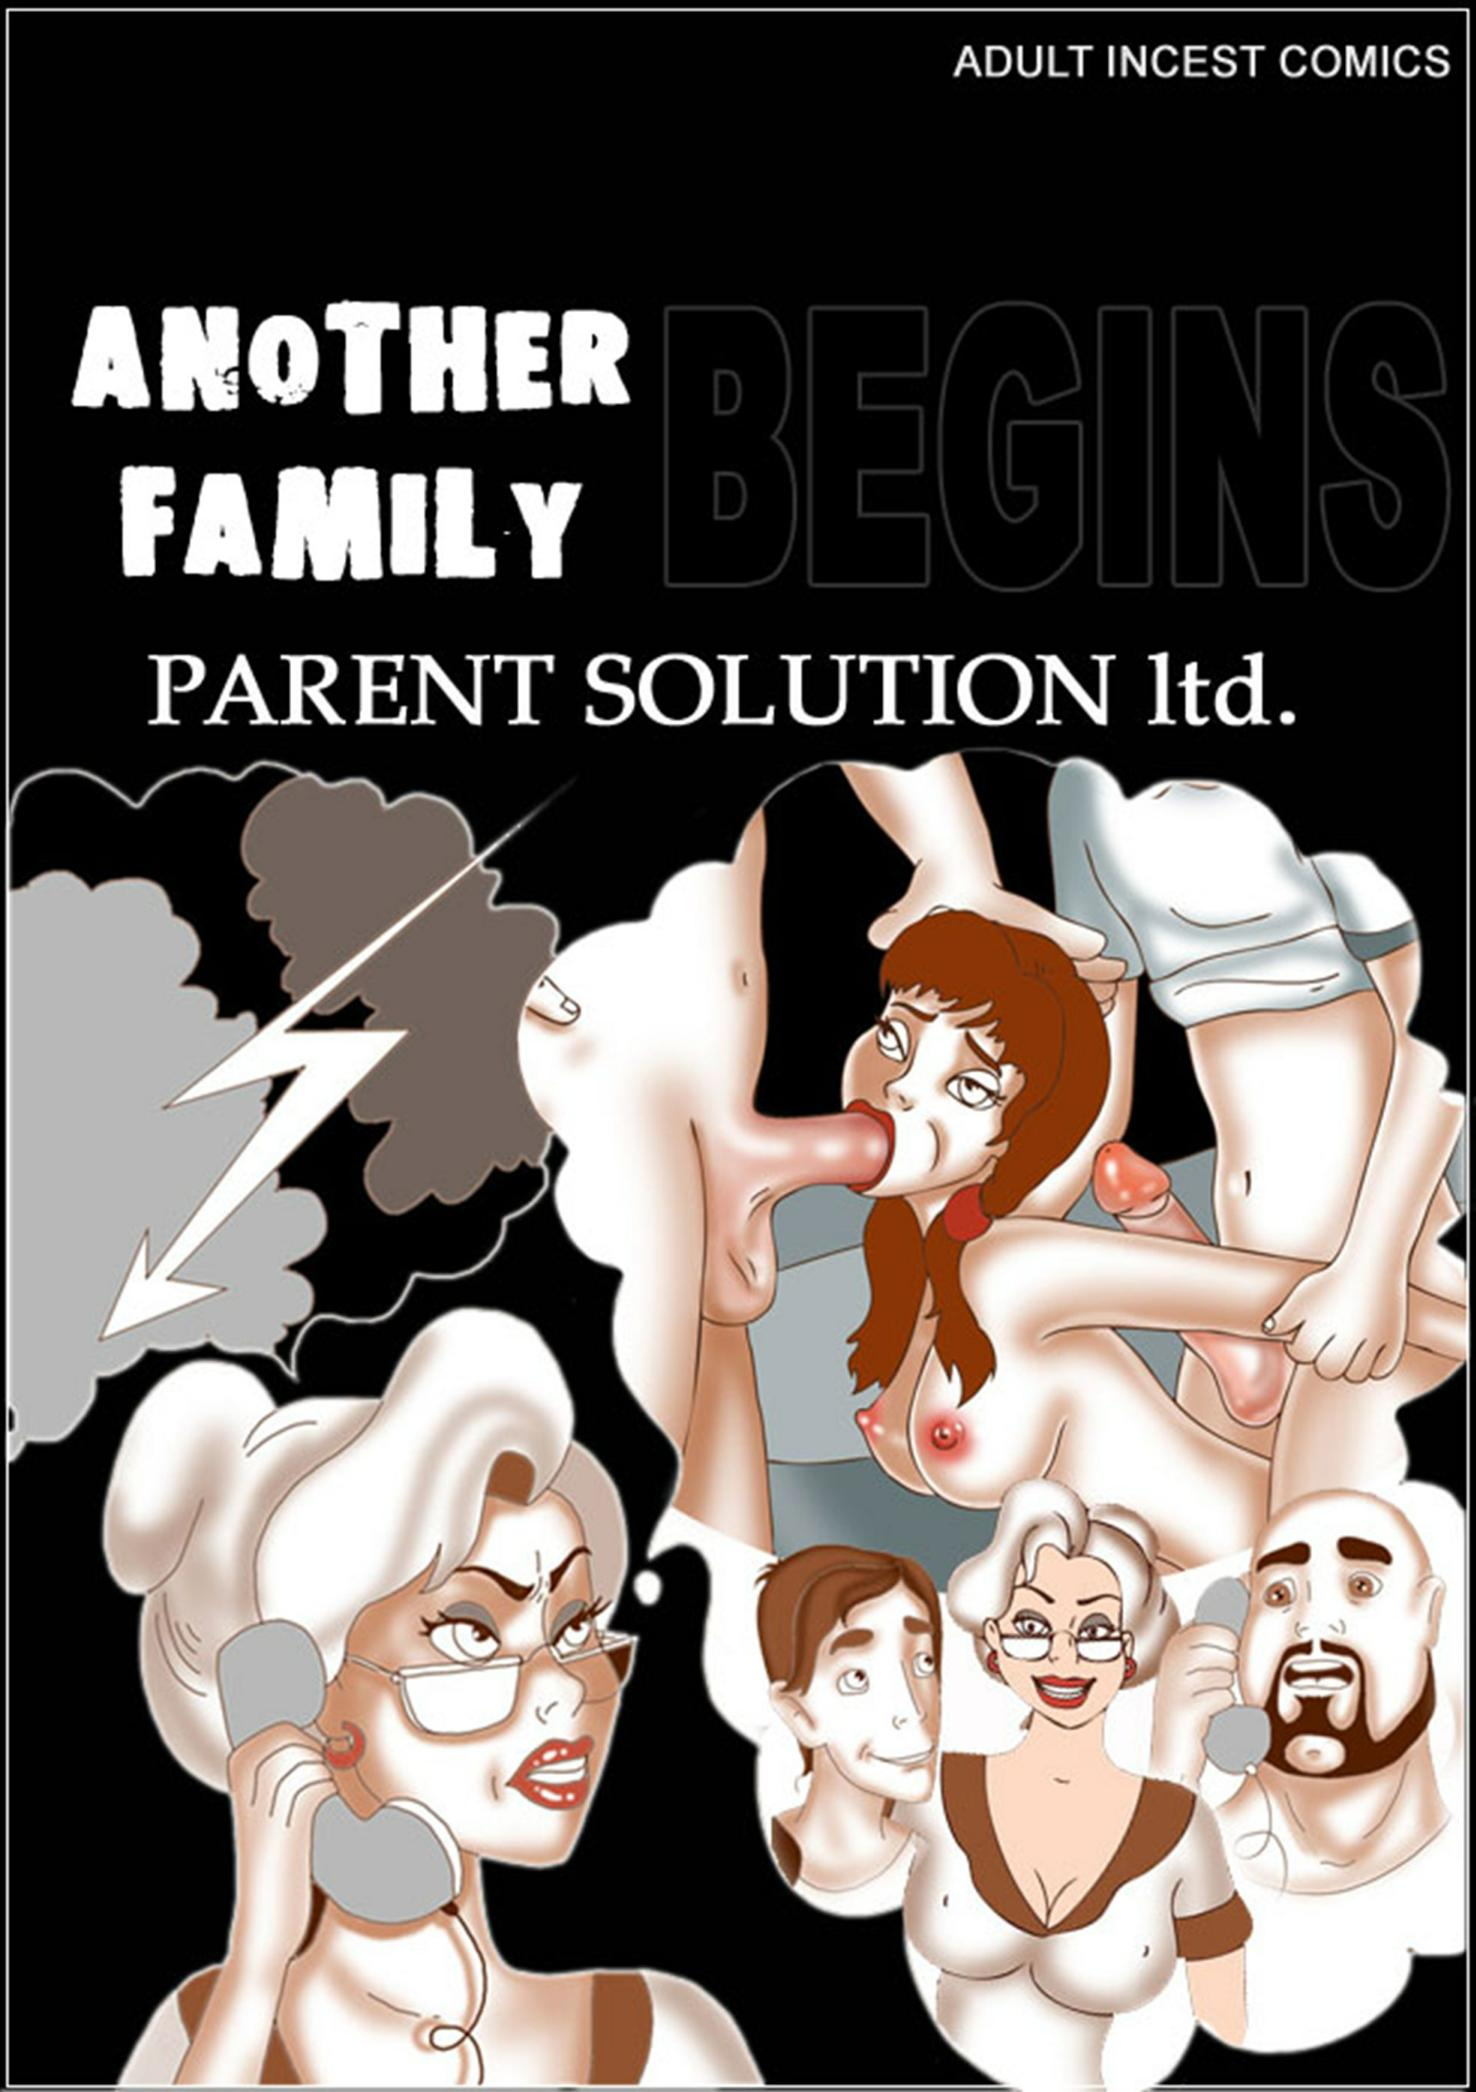 Another Family15 -Parent Solution Ltd